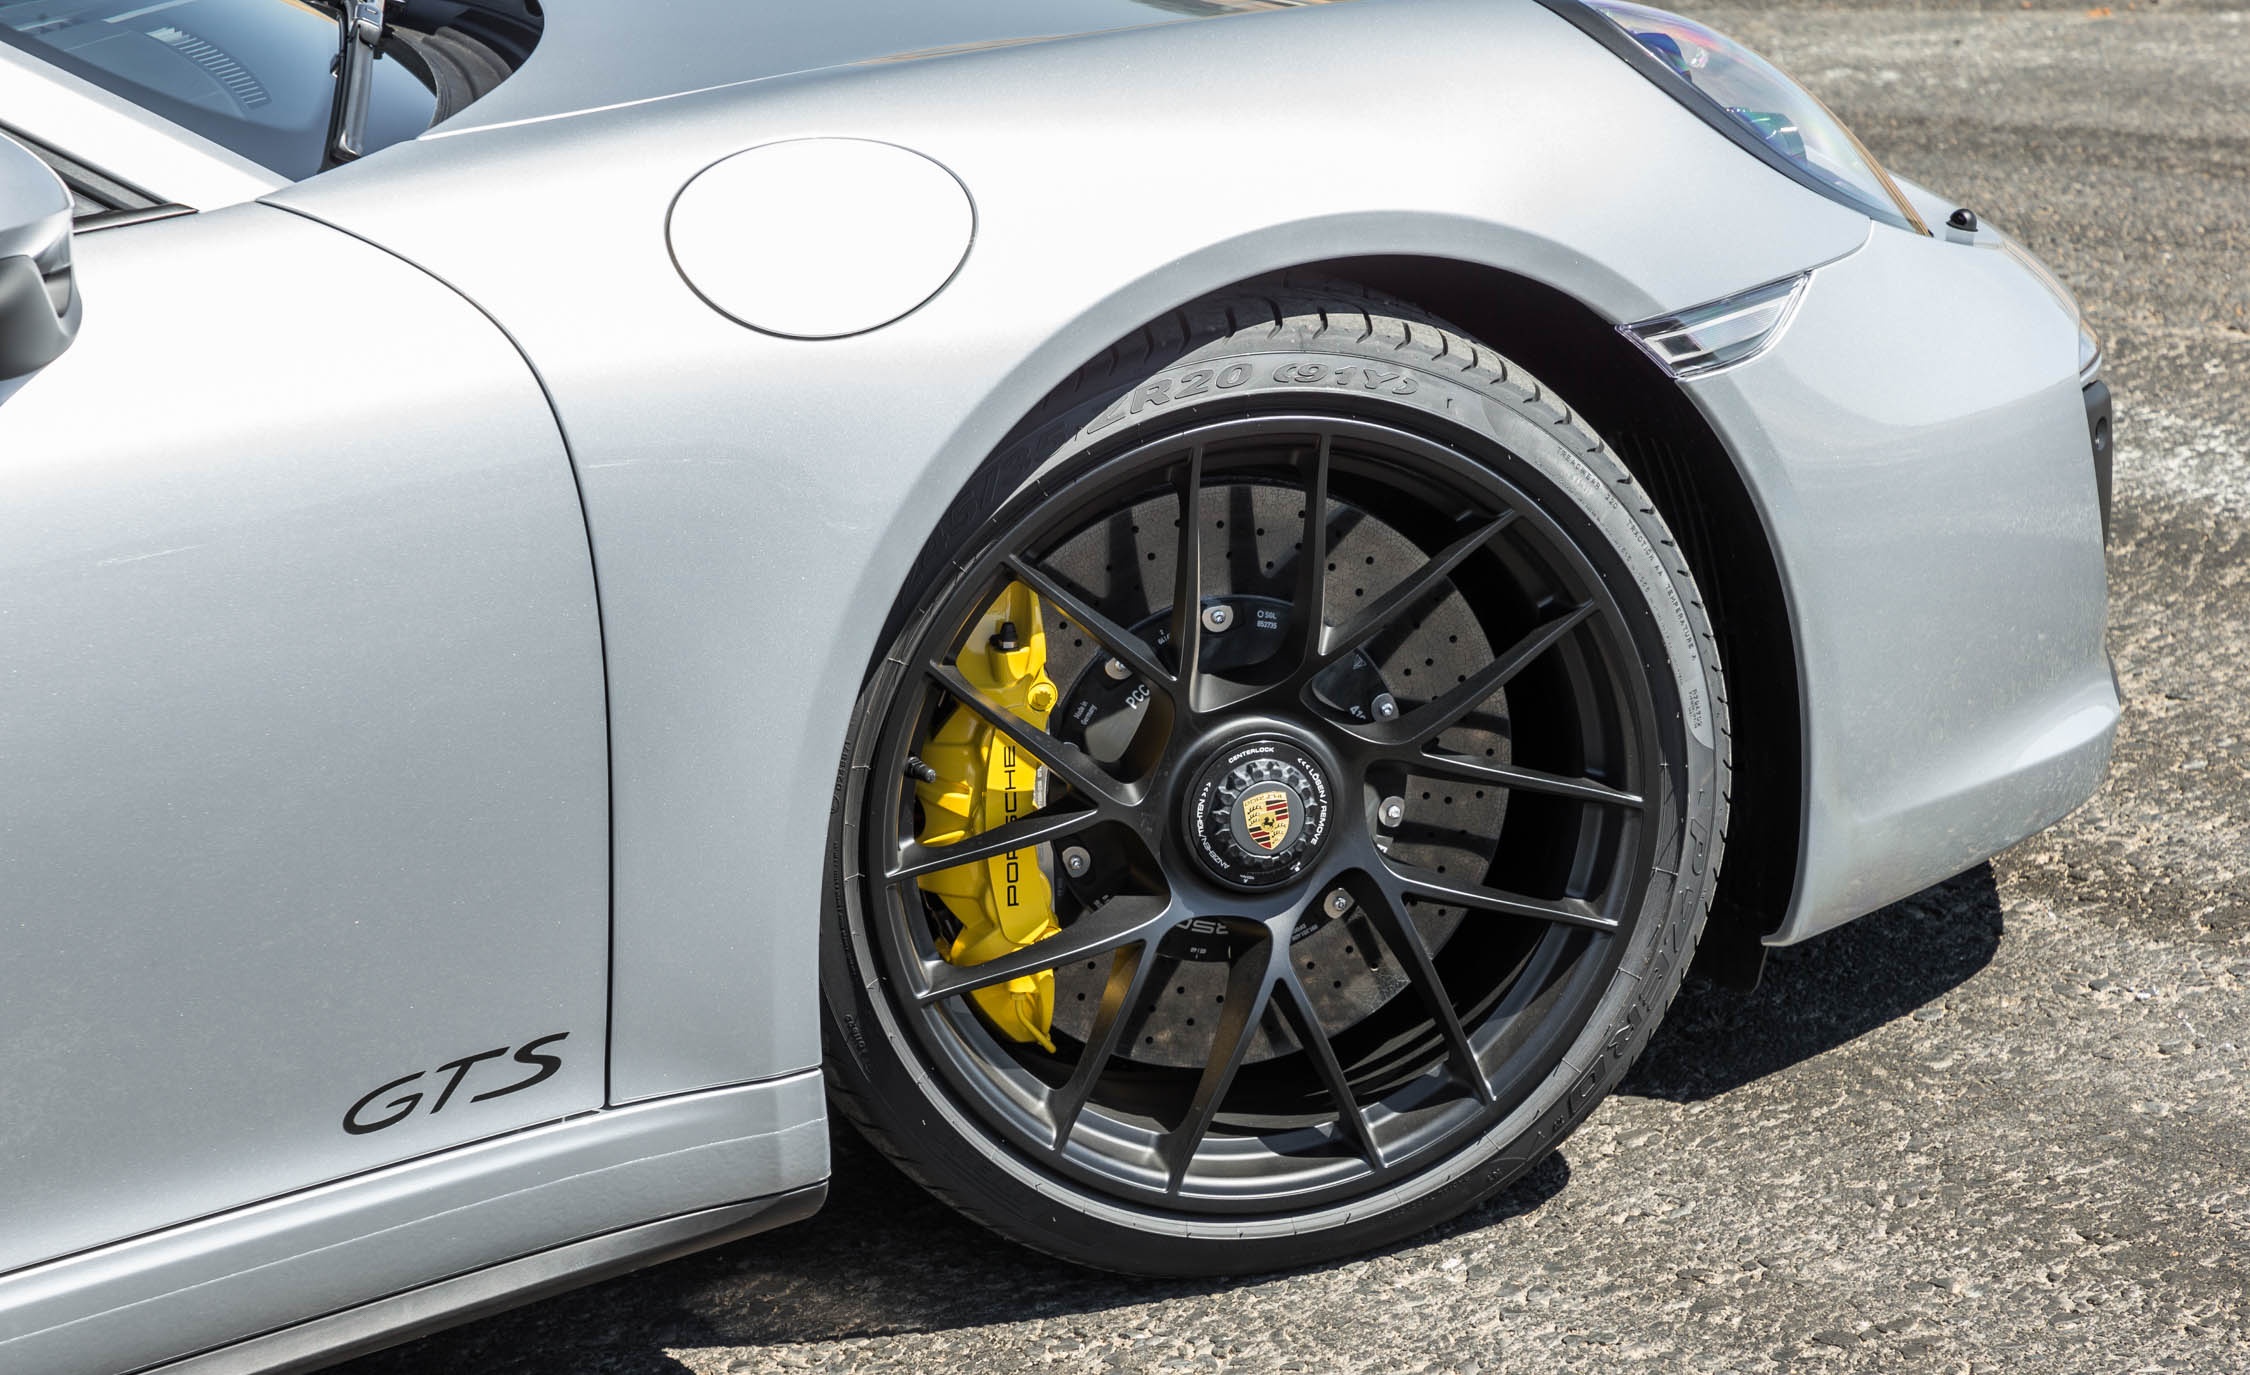 2017 Porsche 911 Carrera GTS Coupe Exterior View Wheel (Photo 48 of 97)